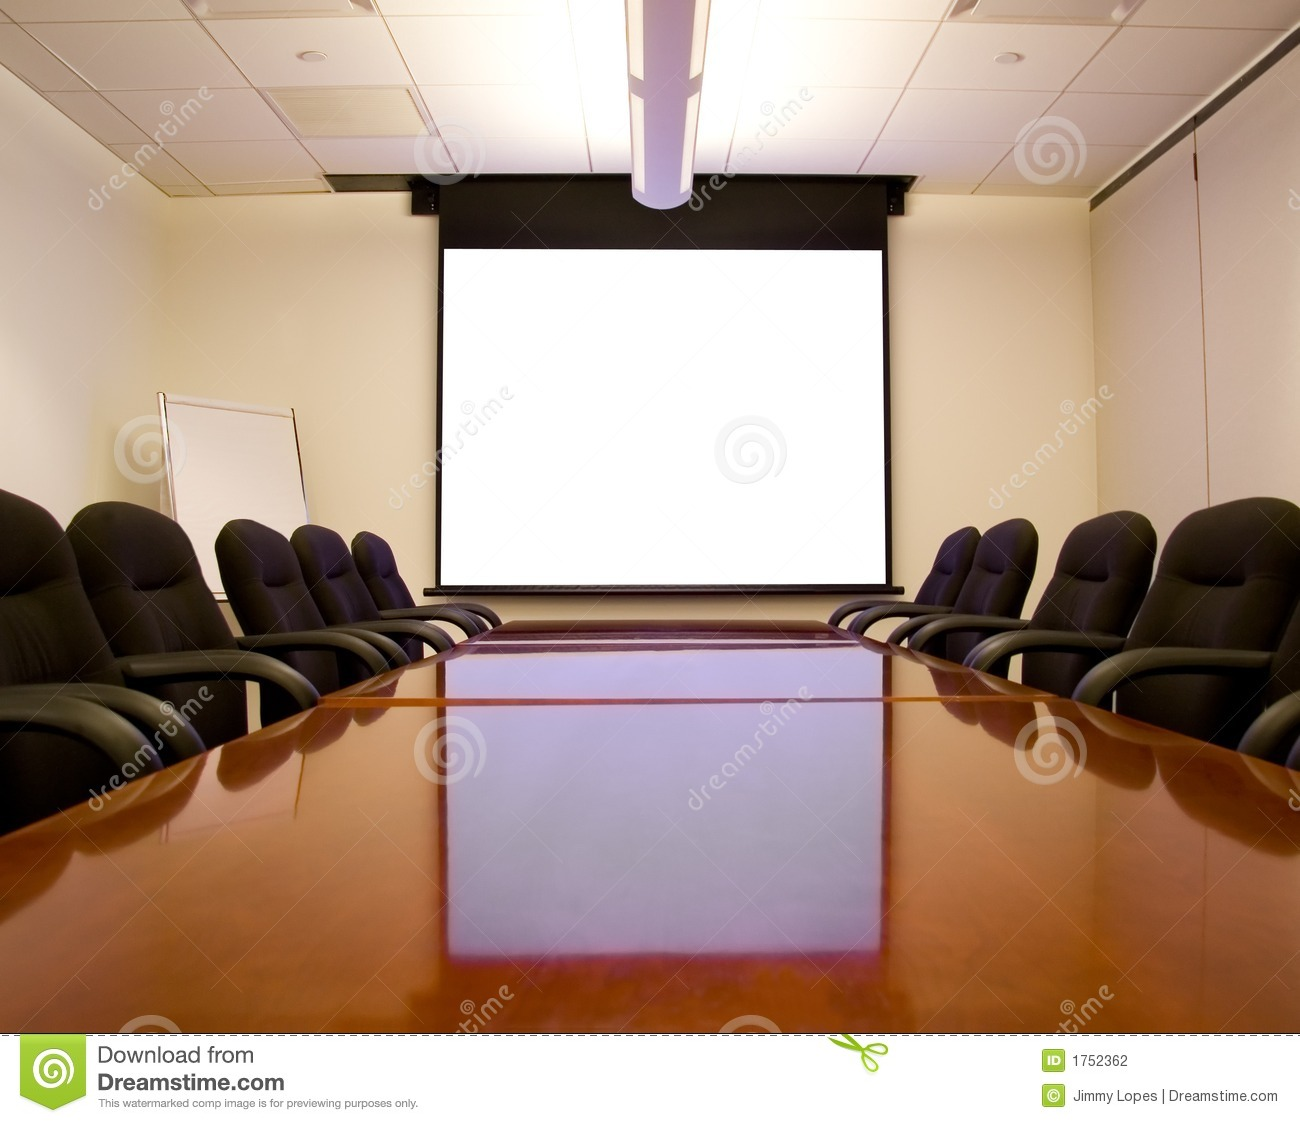 Meeting Room With Screen Stock Photography - Image: 1752362: www.dreamstime.com/stock-photography-meeting-room-screen-image1752362